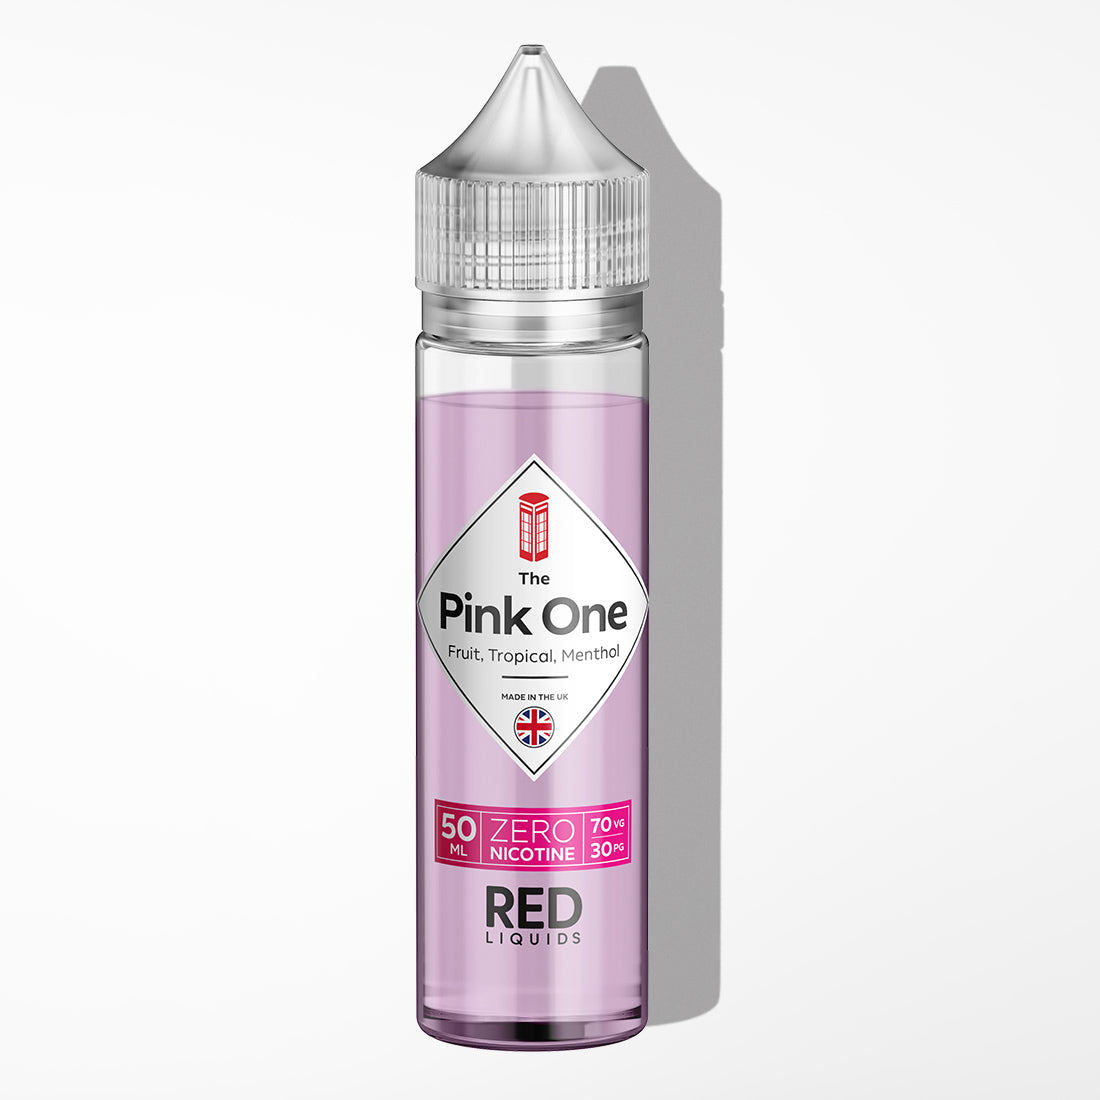 RED Classic Shortfill - The Pink One